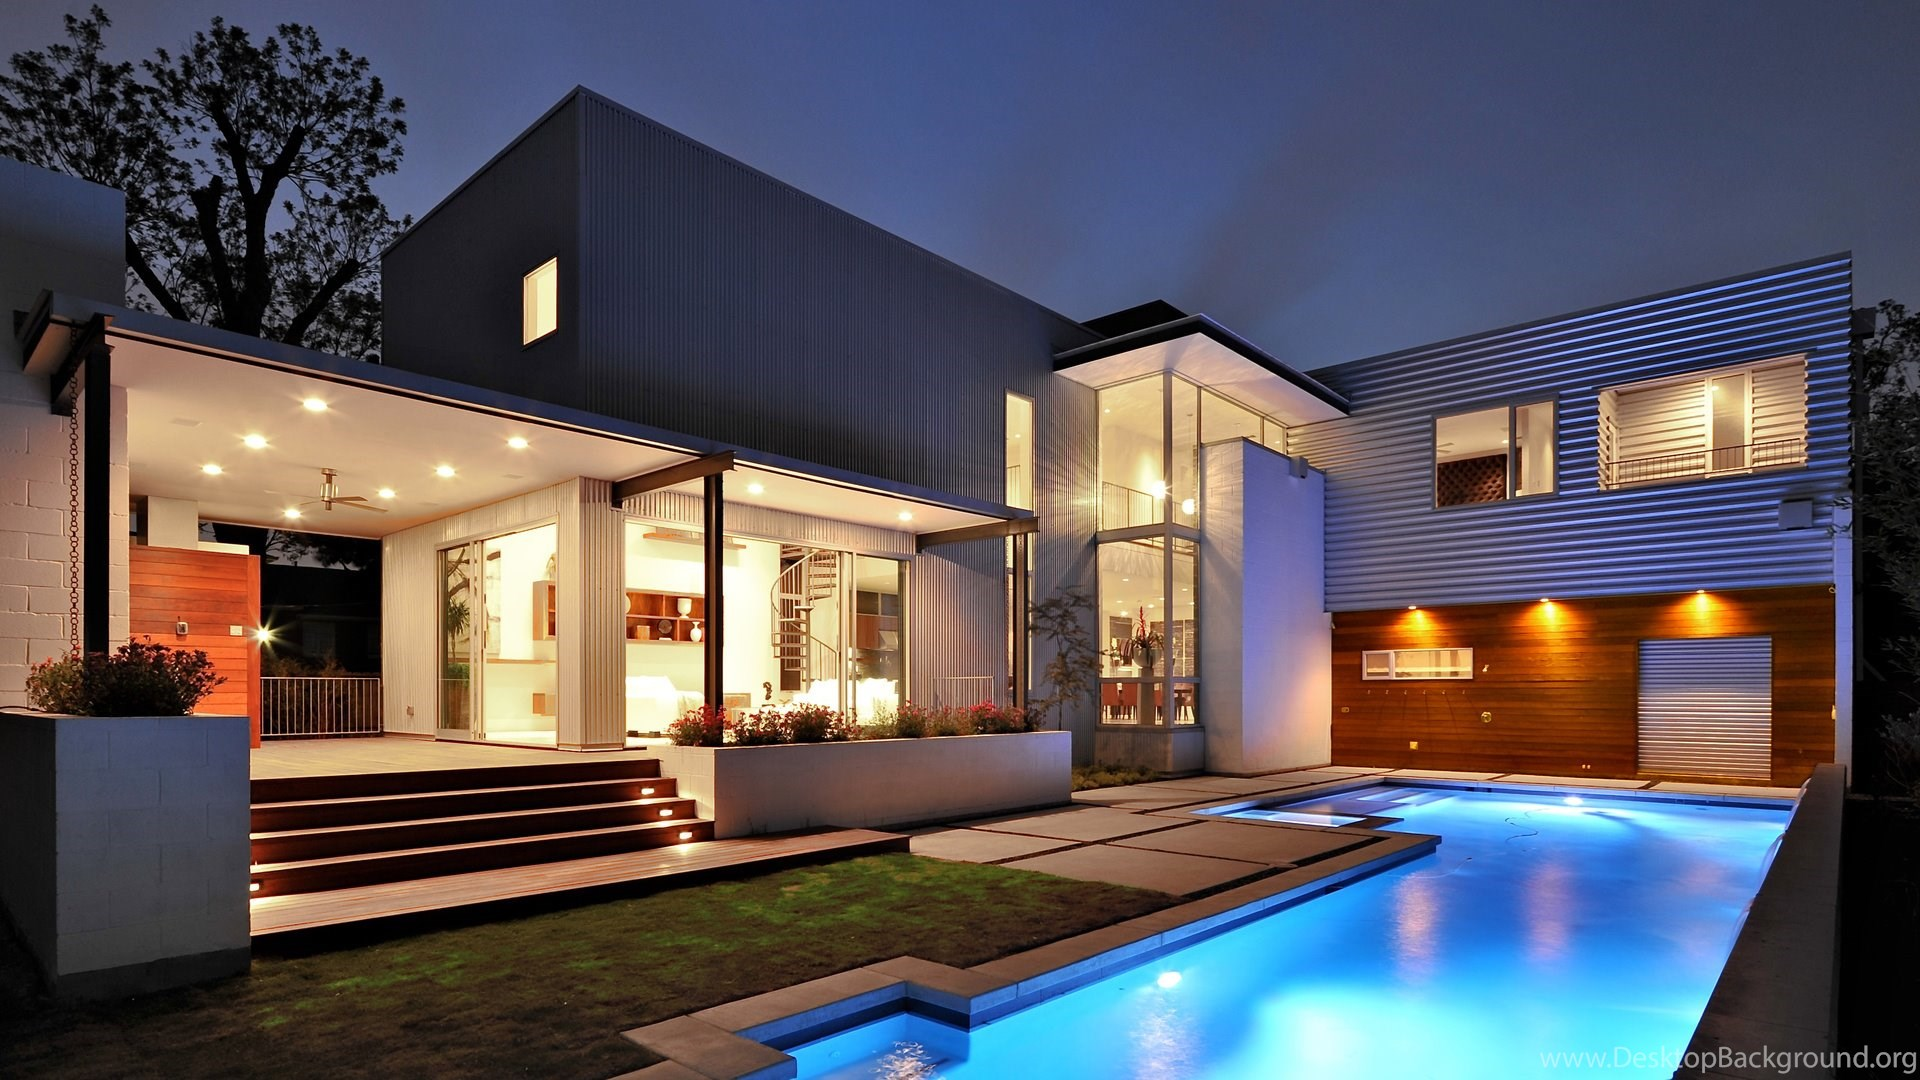 1920x1080 Modern, Style, Pool., Exterior, The House, Pool, House ...